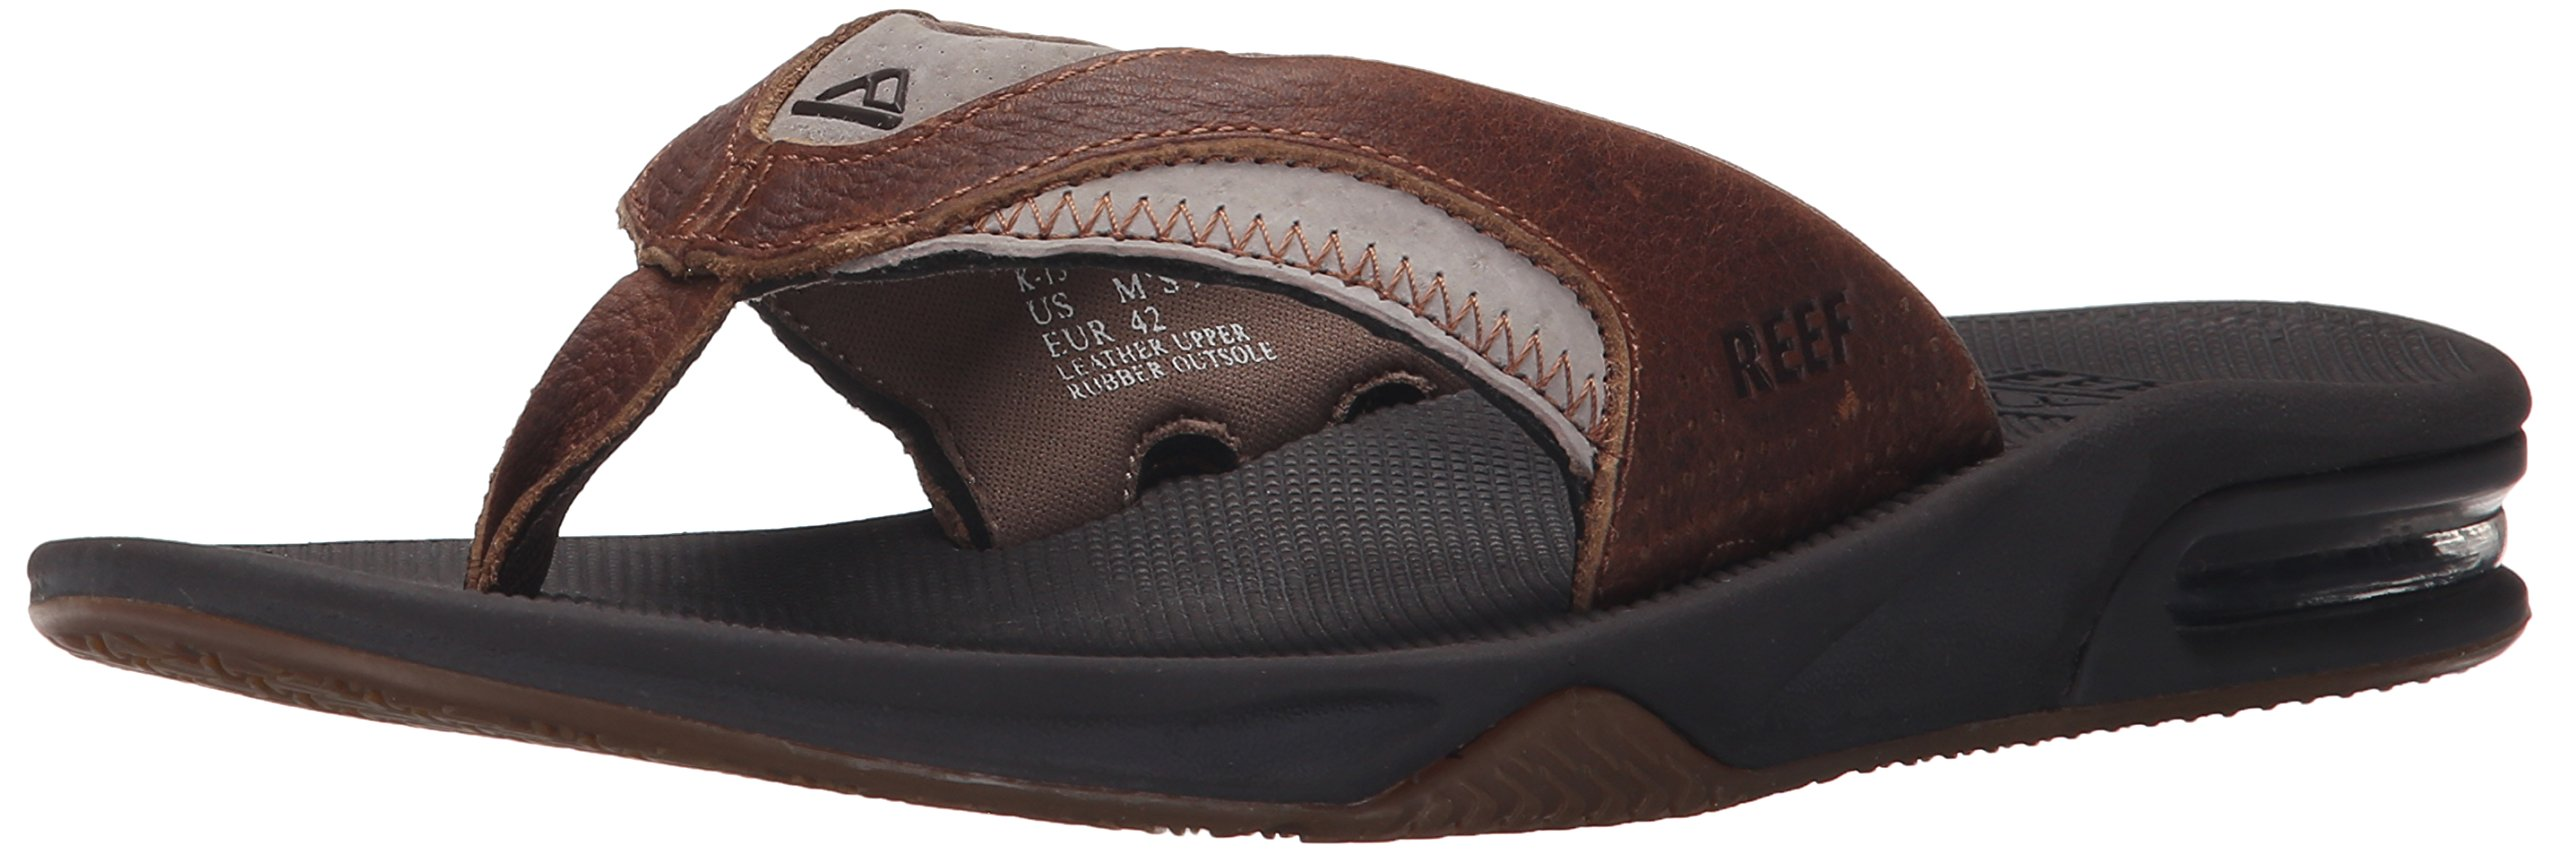 Reef Men's Leather Fanning Sandal, Brown/Brown, 11 M US